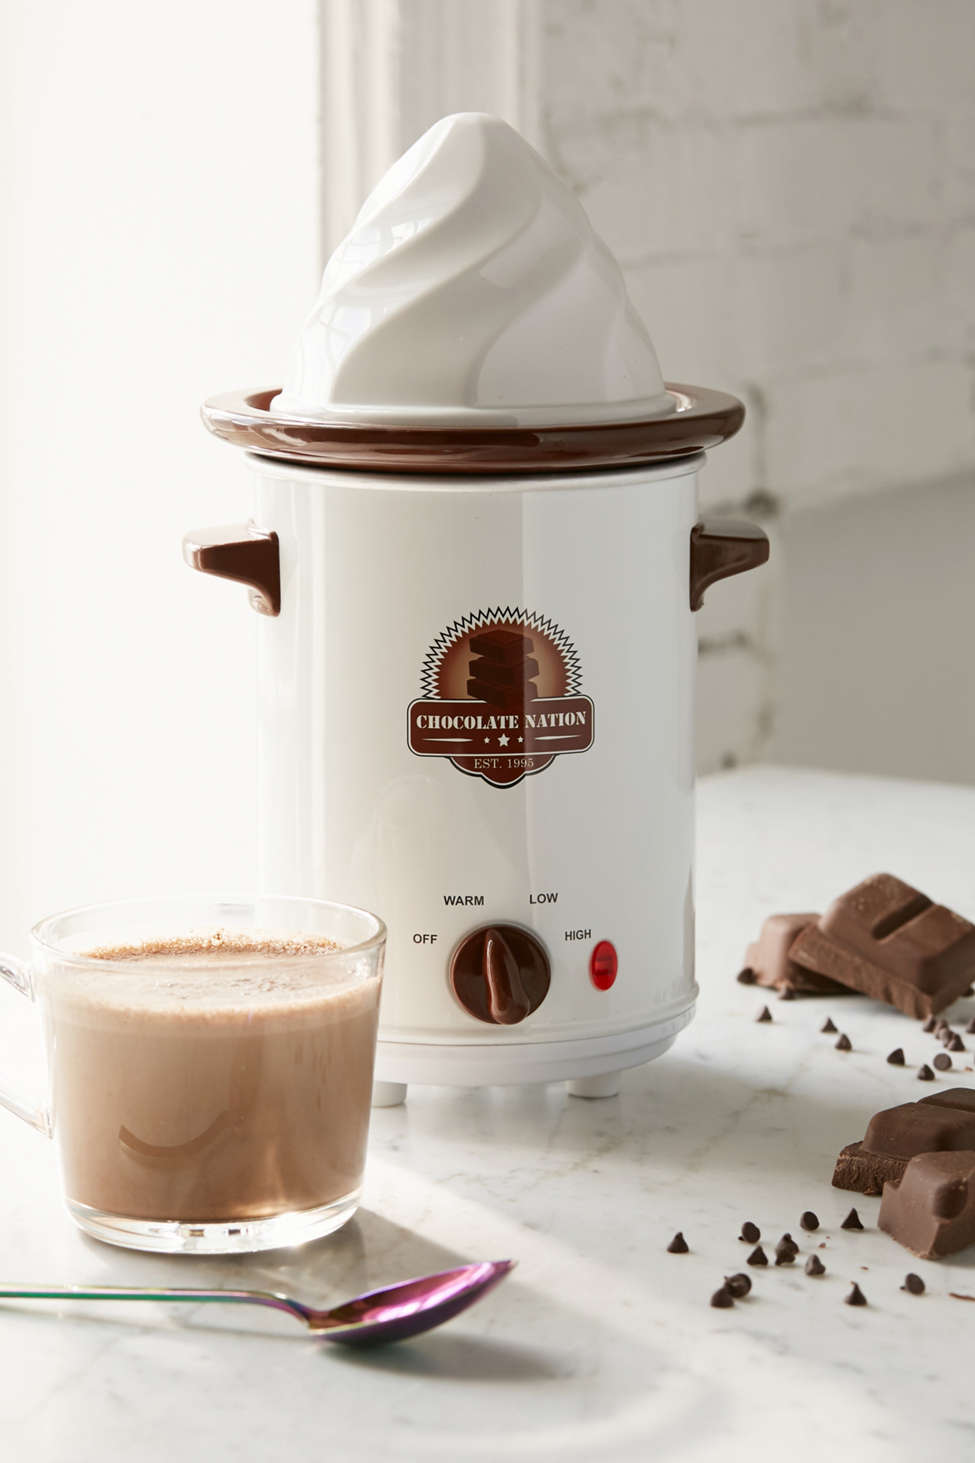 Slide View: 1: Old Fashioned Hot Chocolate Maker